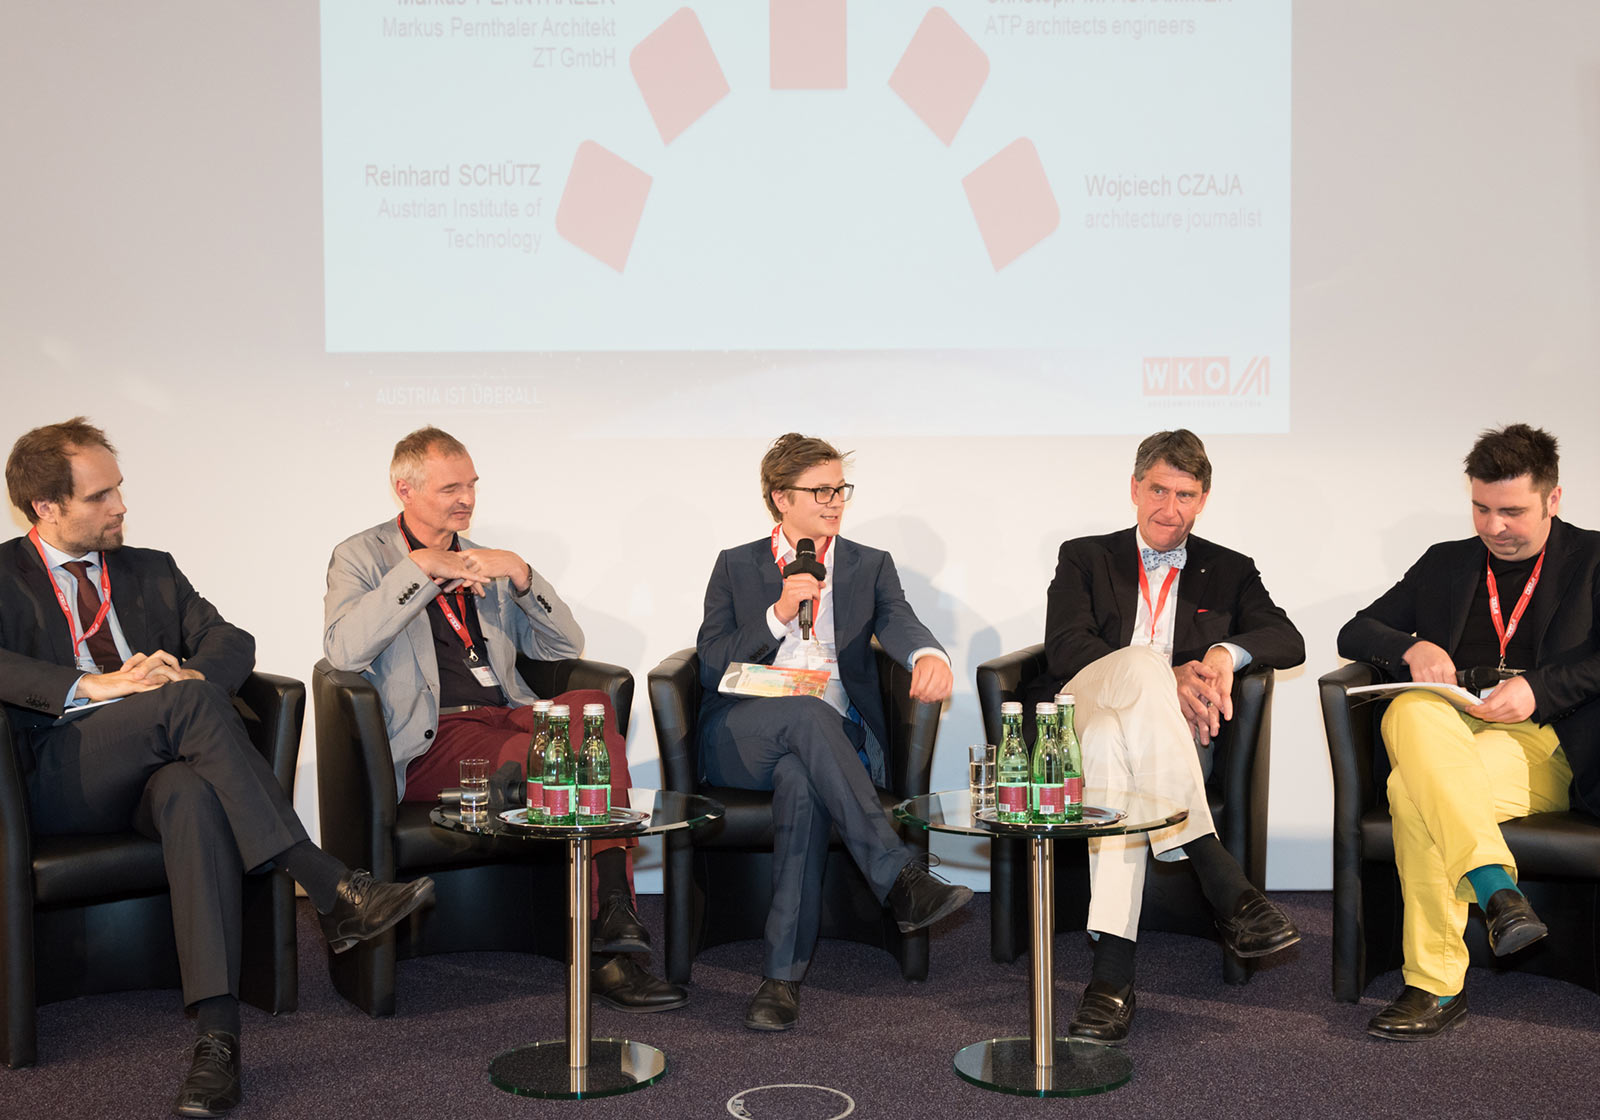 Reinhard Schütz, Markus Pernthaler, Daniel Glaser, Christoph M. Achammer (CEO ATP) and the moderator Wojciech Czaja (Der Standard) during the podium discussion (from left). Photo: ATP